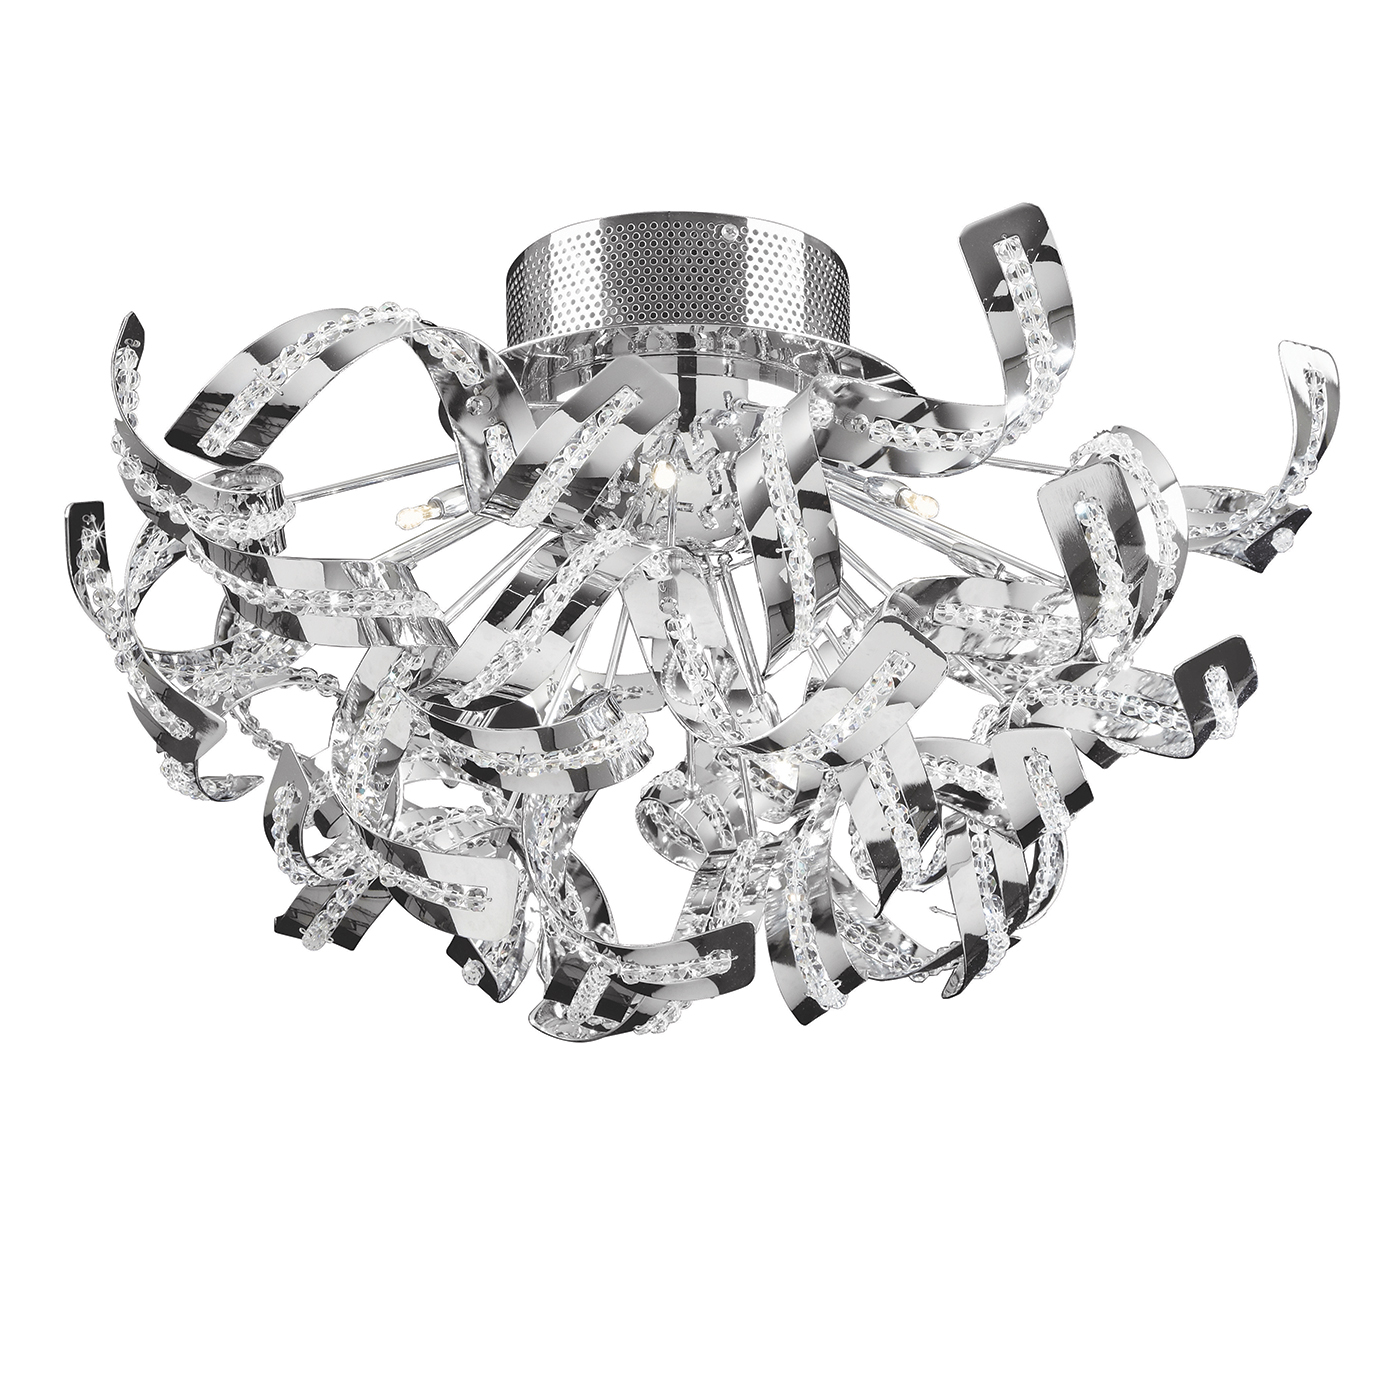 Endon Twist flush ceiling light 12x 20W Chrome effect & clear crystal (k5) glass